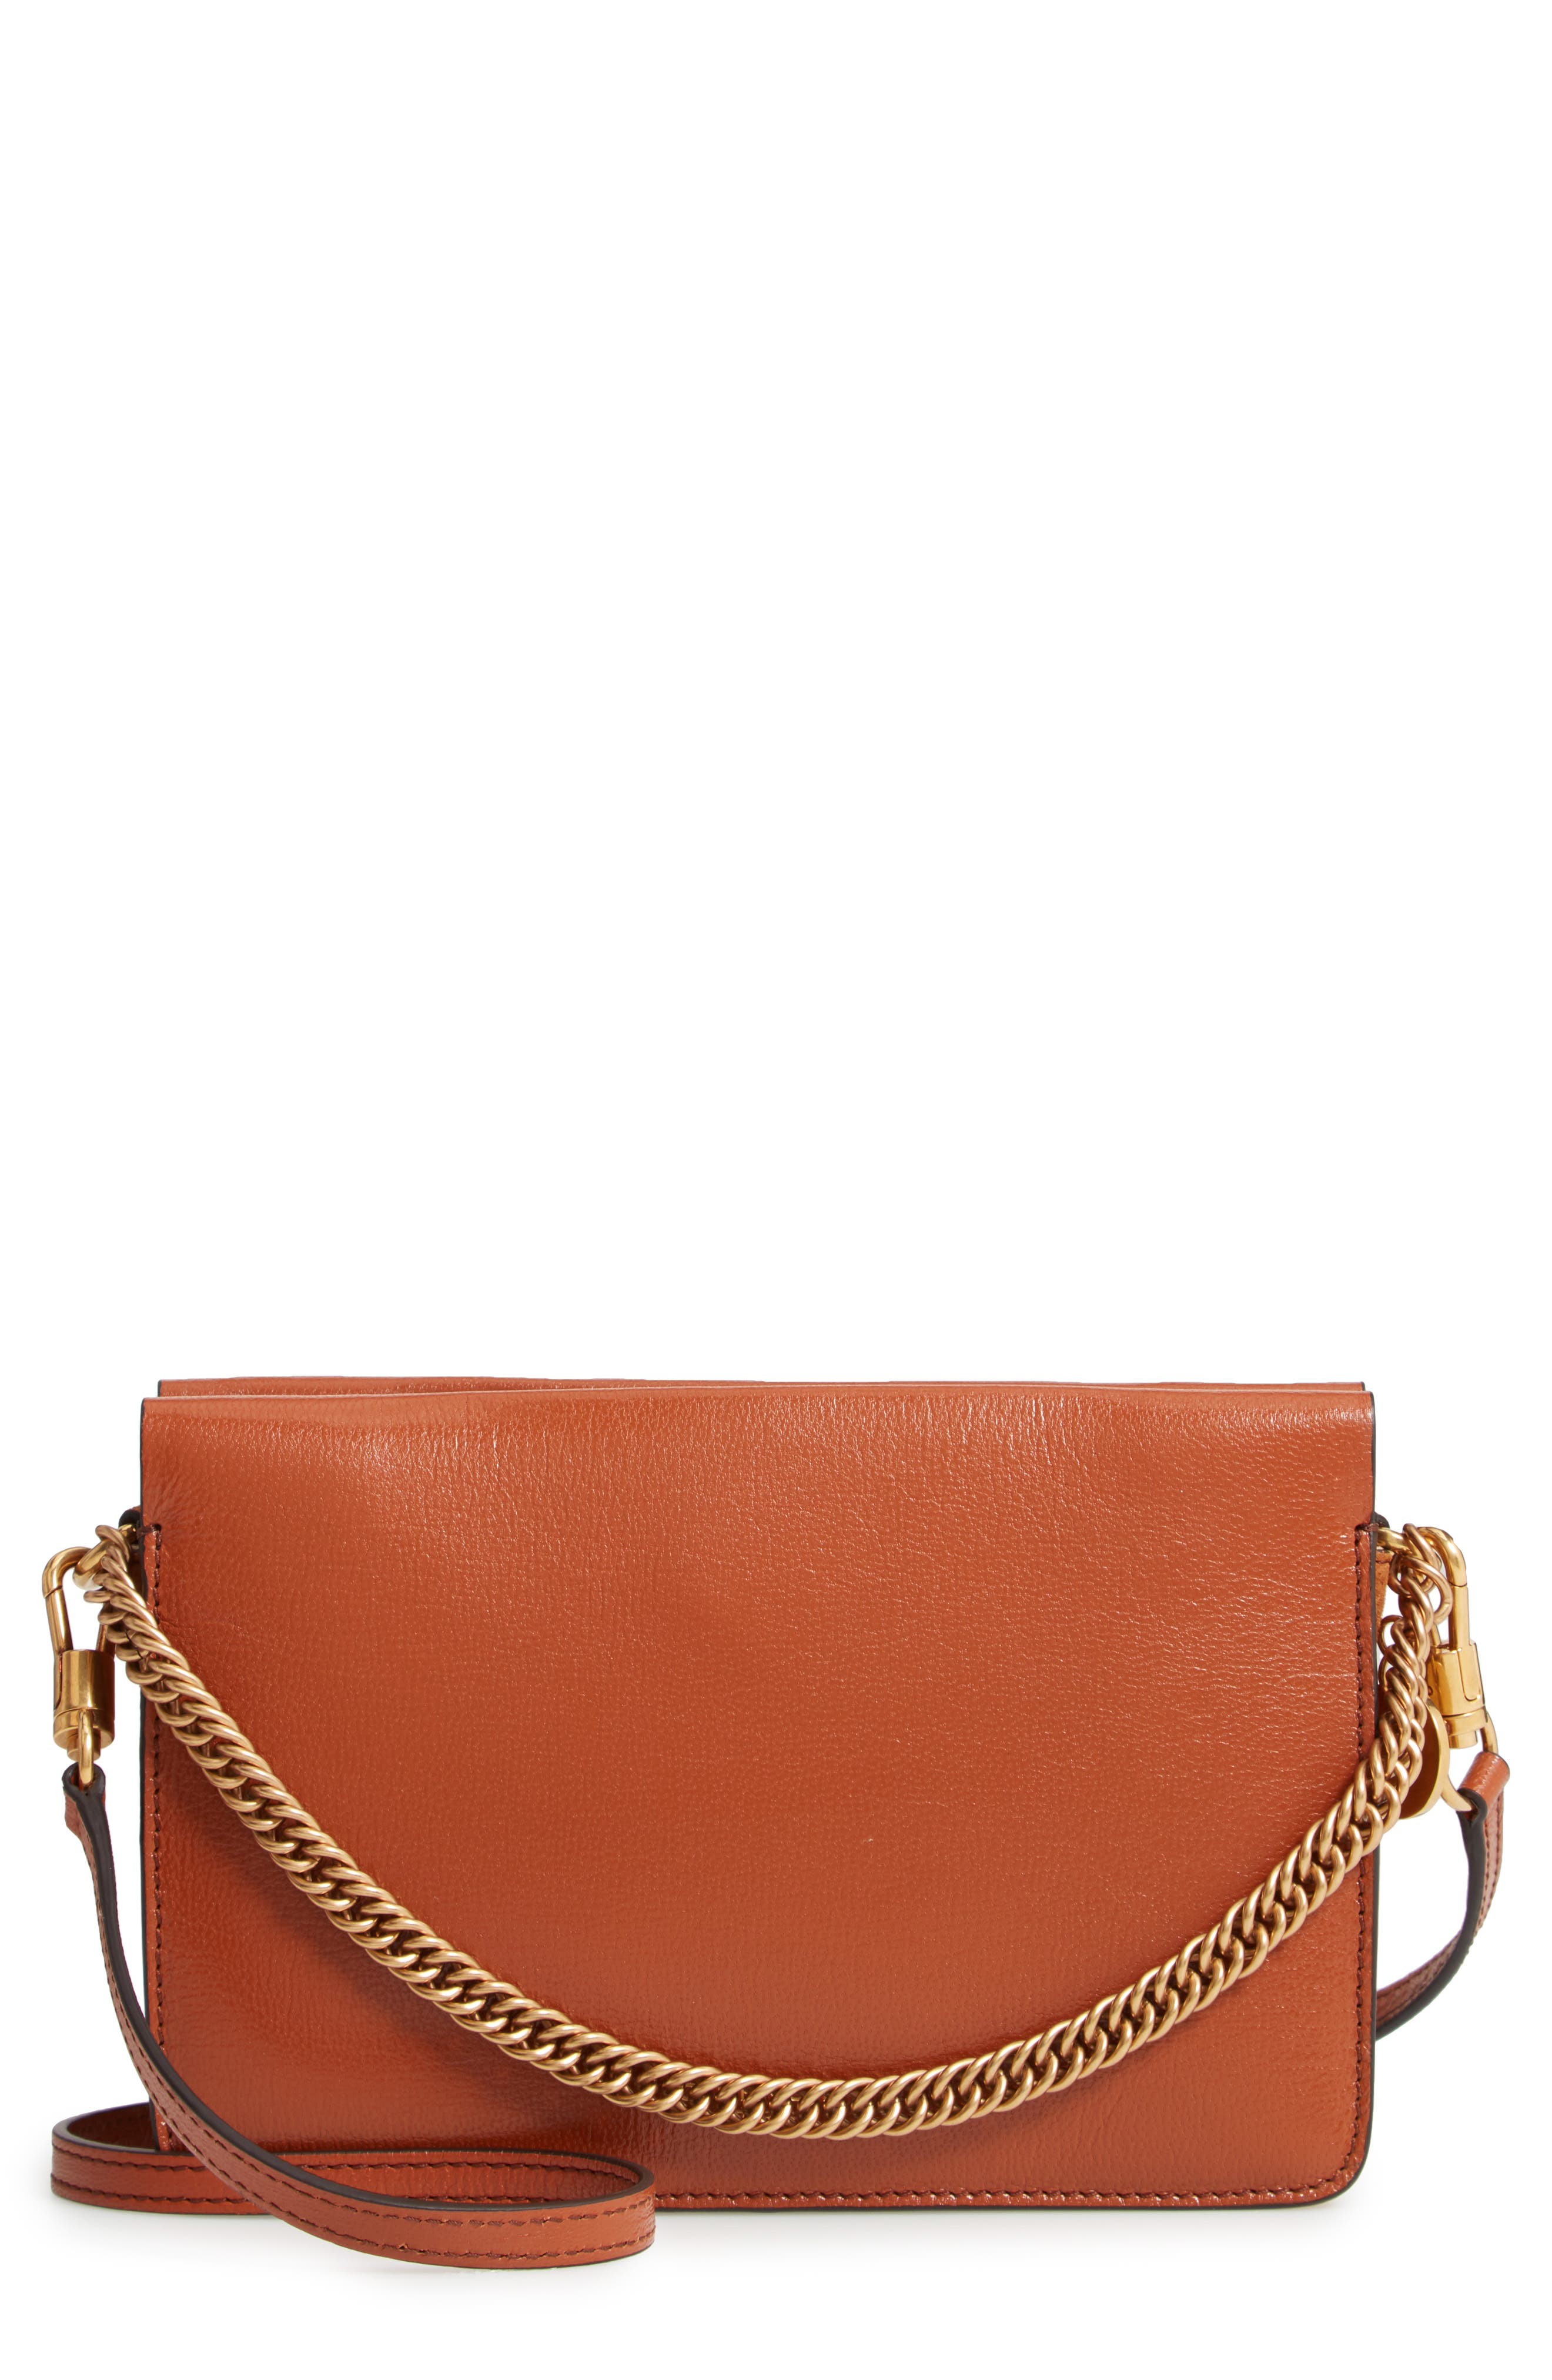 629ac43496 Givenchy Cross 3 Leather Crossbody Bag - Brown